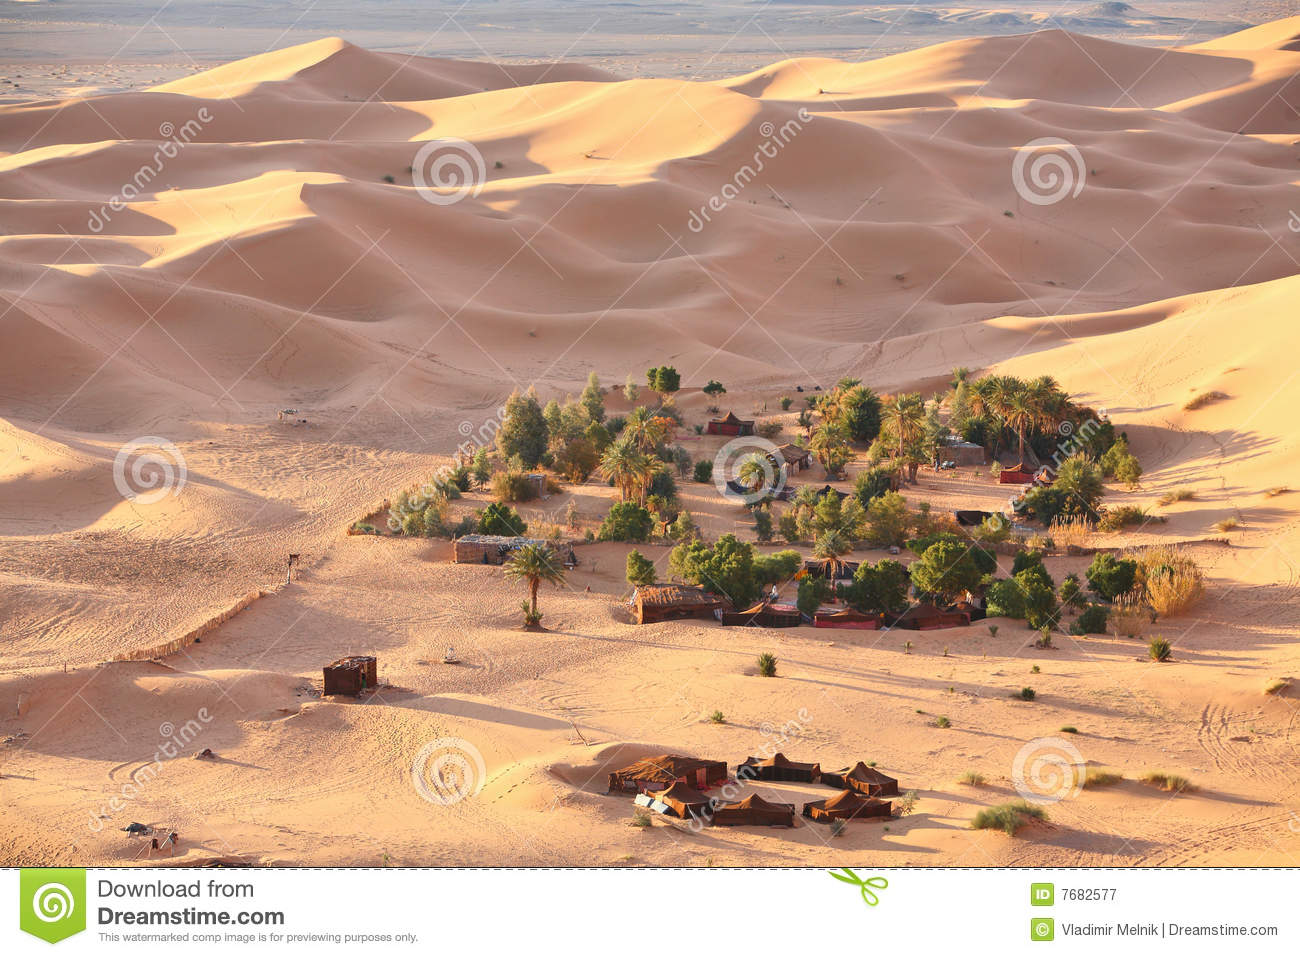 oasis in sahara desert stock image image of survival 7682577. Black Bedroom Furniture Sets. Home Design Ideas